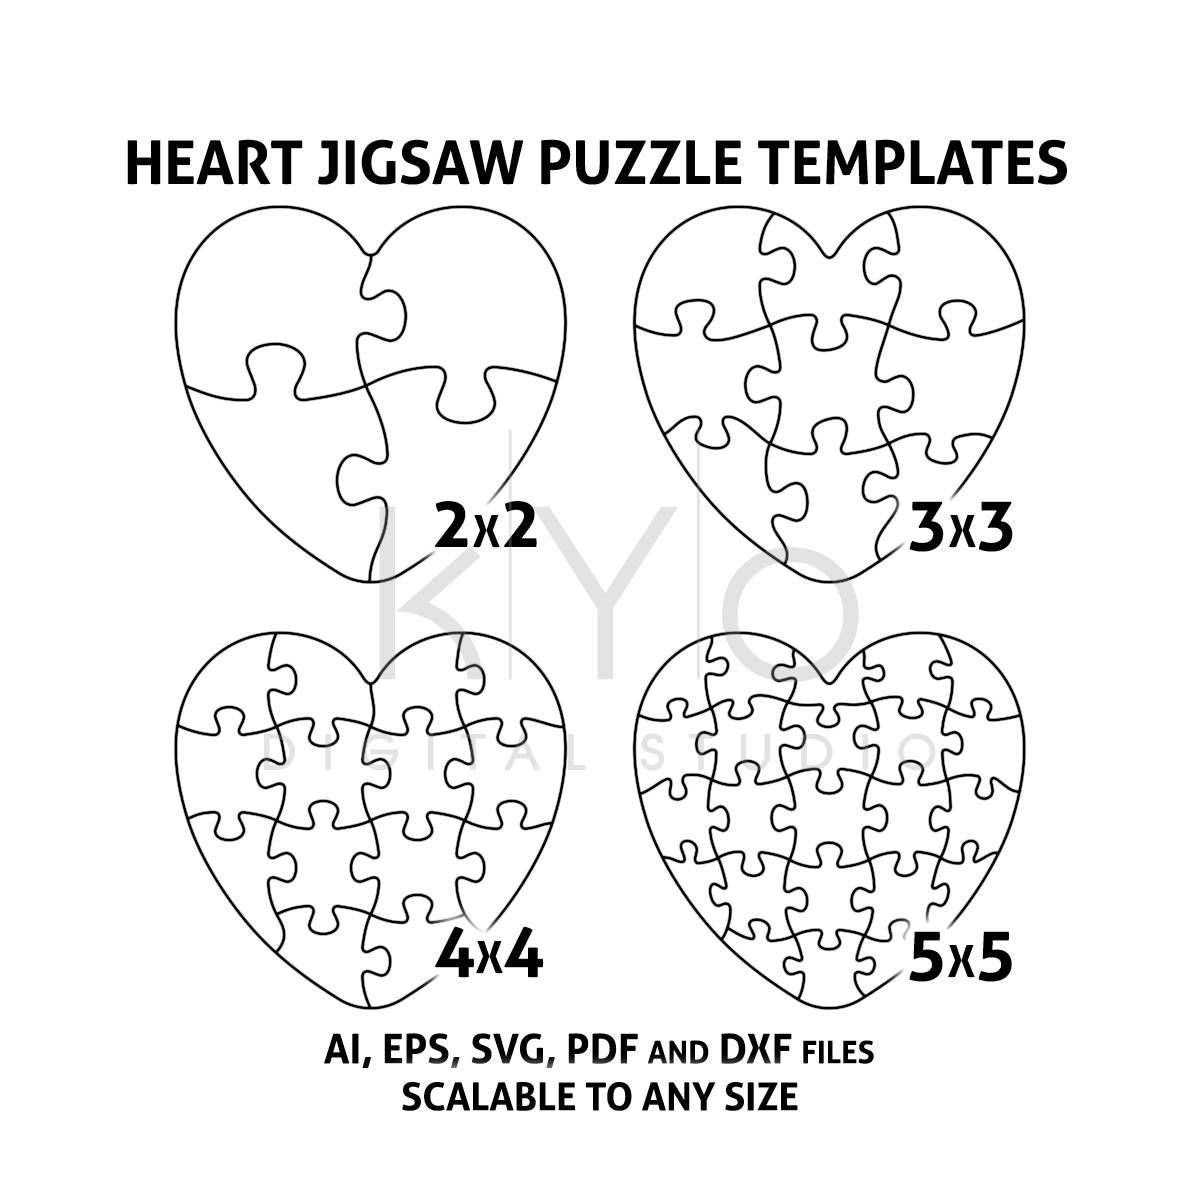 Heart Jigsaw Puzzle Templates AI EPS SVG pdf dxf files